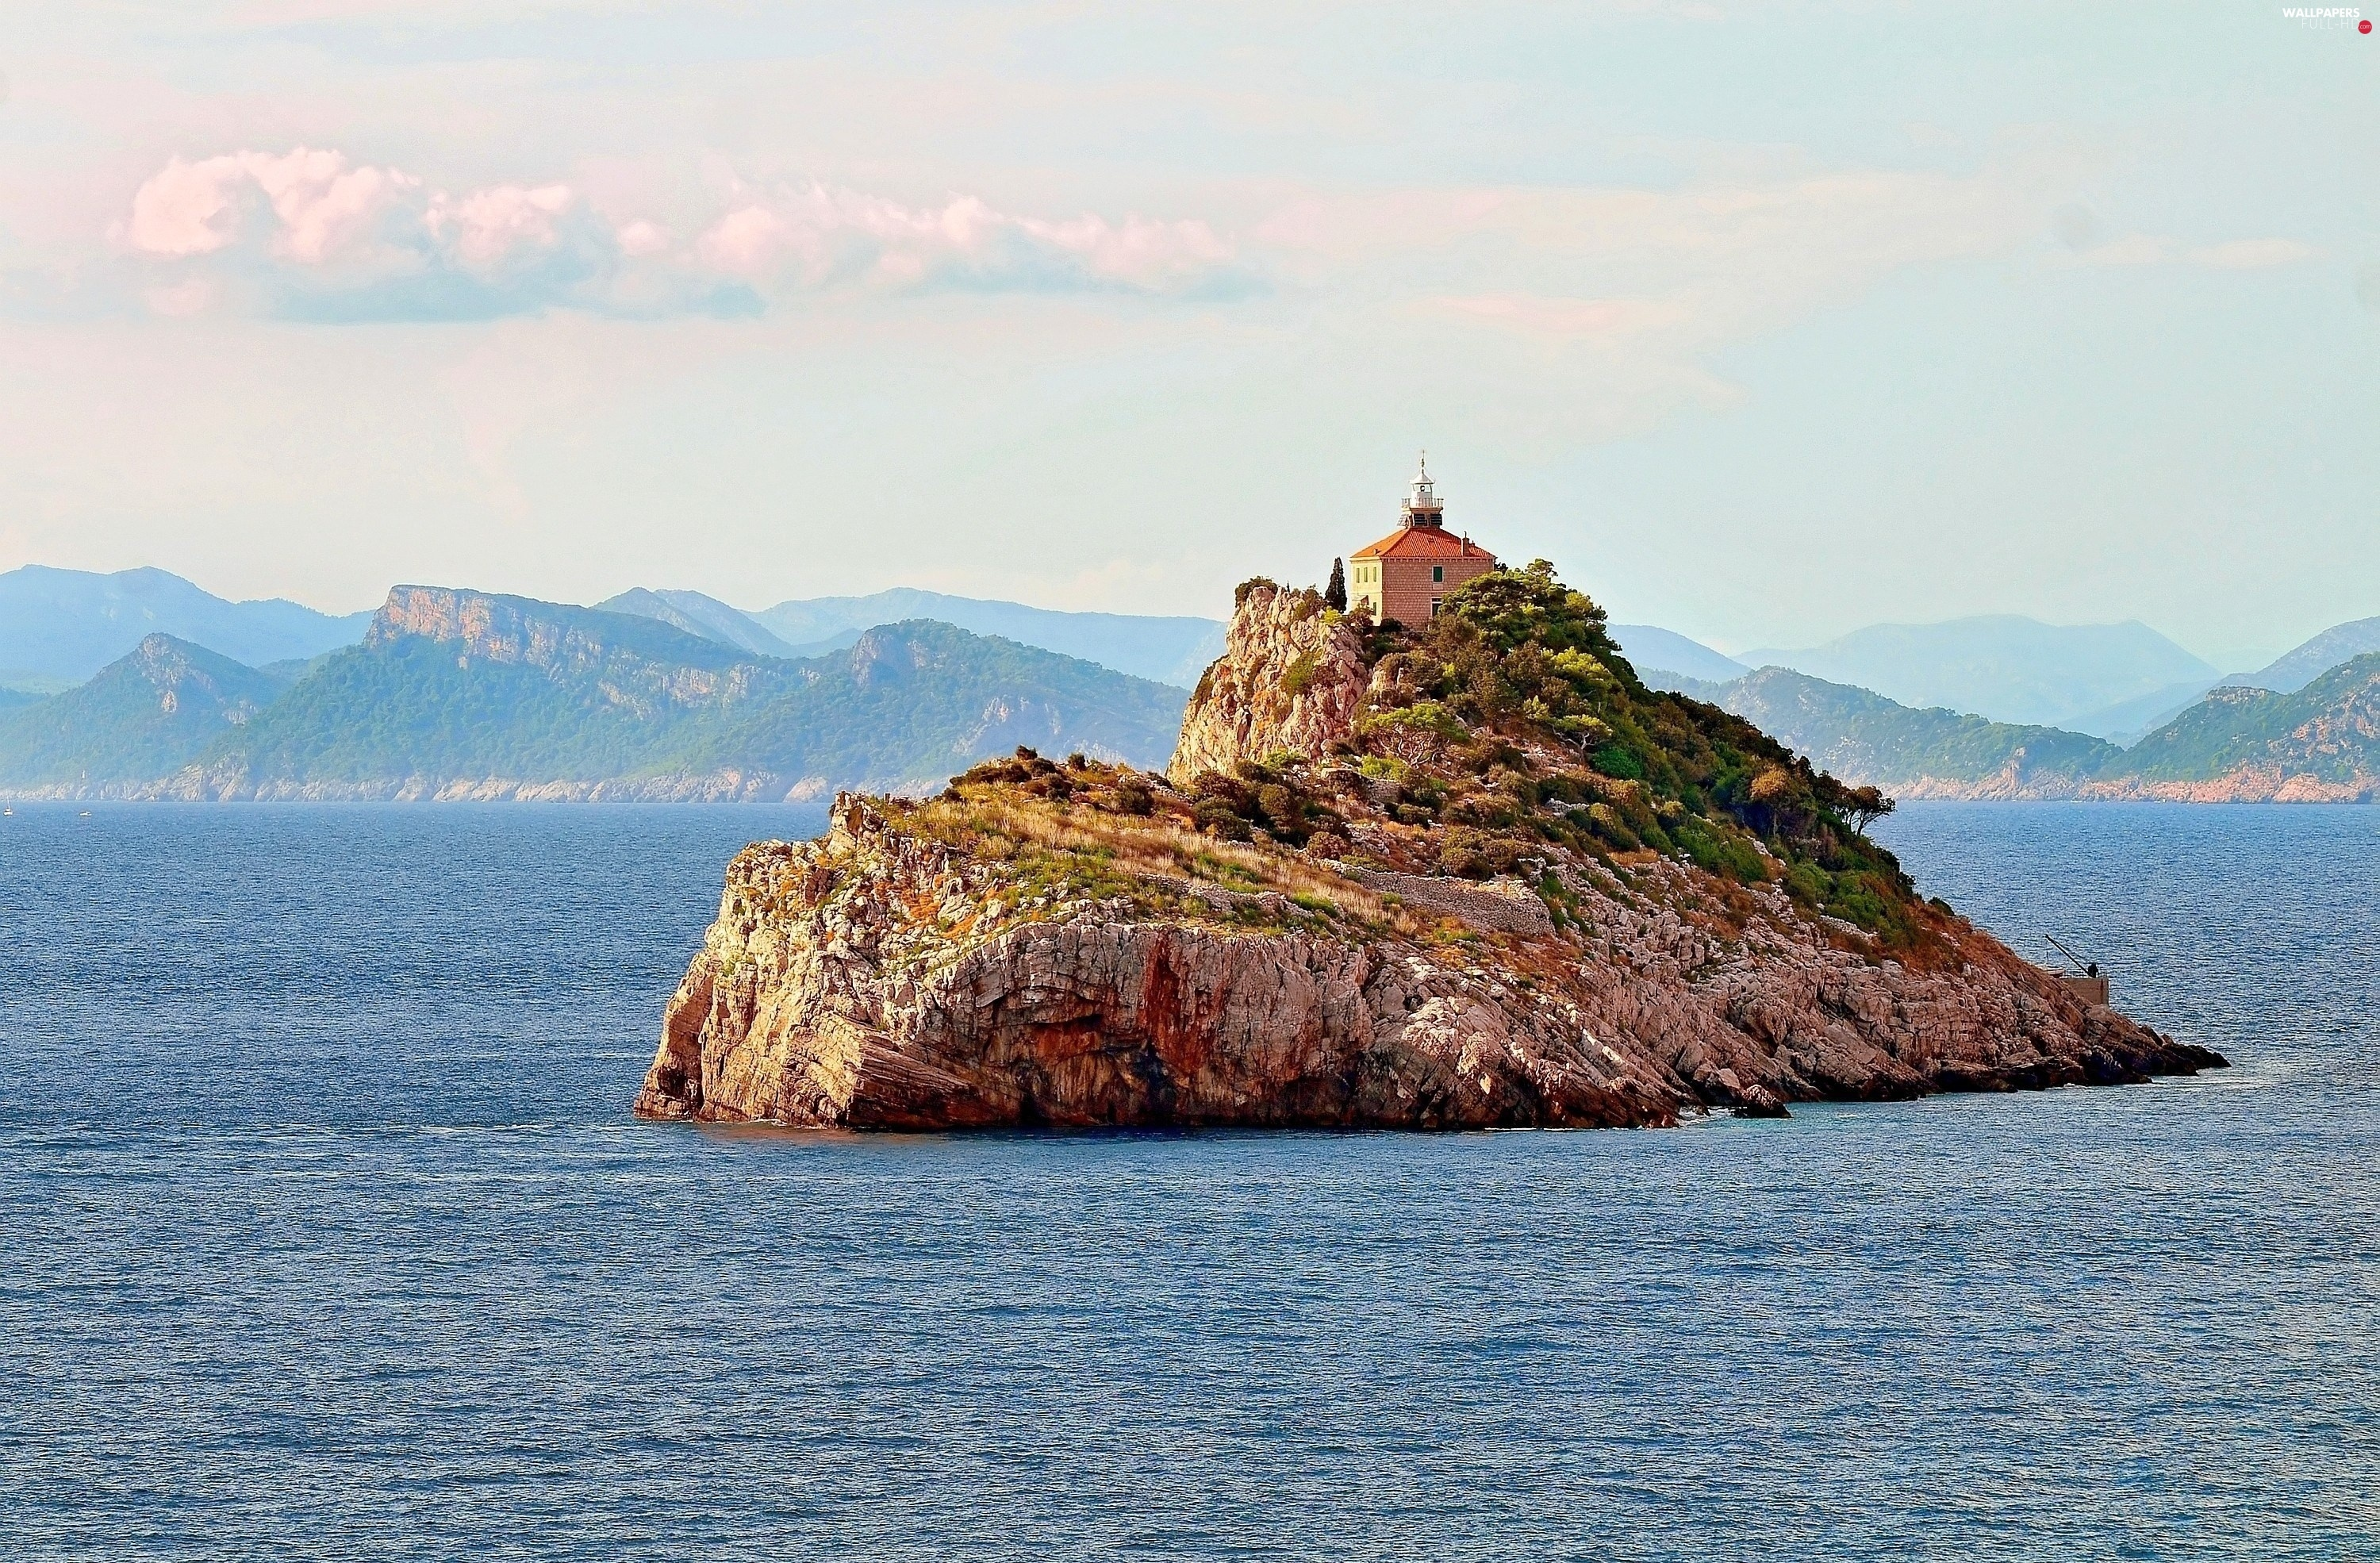 Church, Islet, Mountains, sea